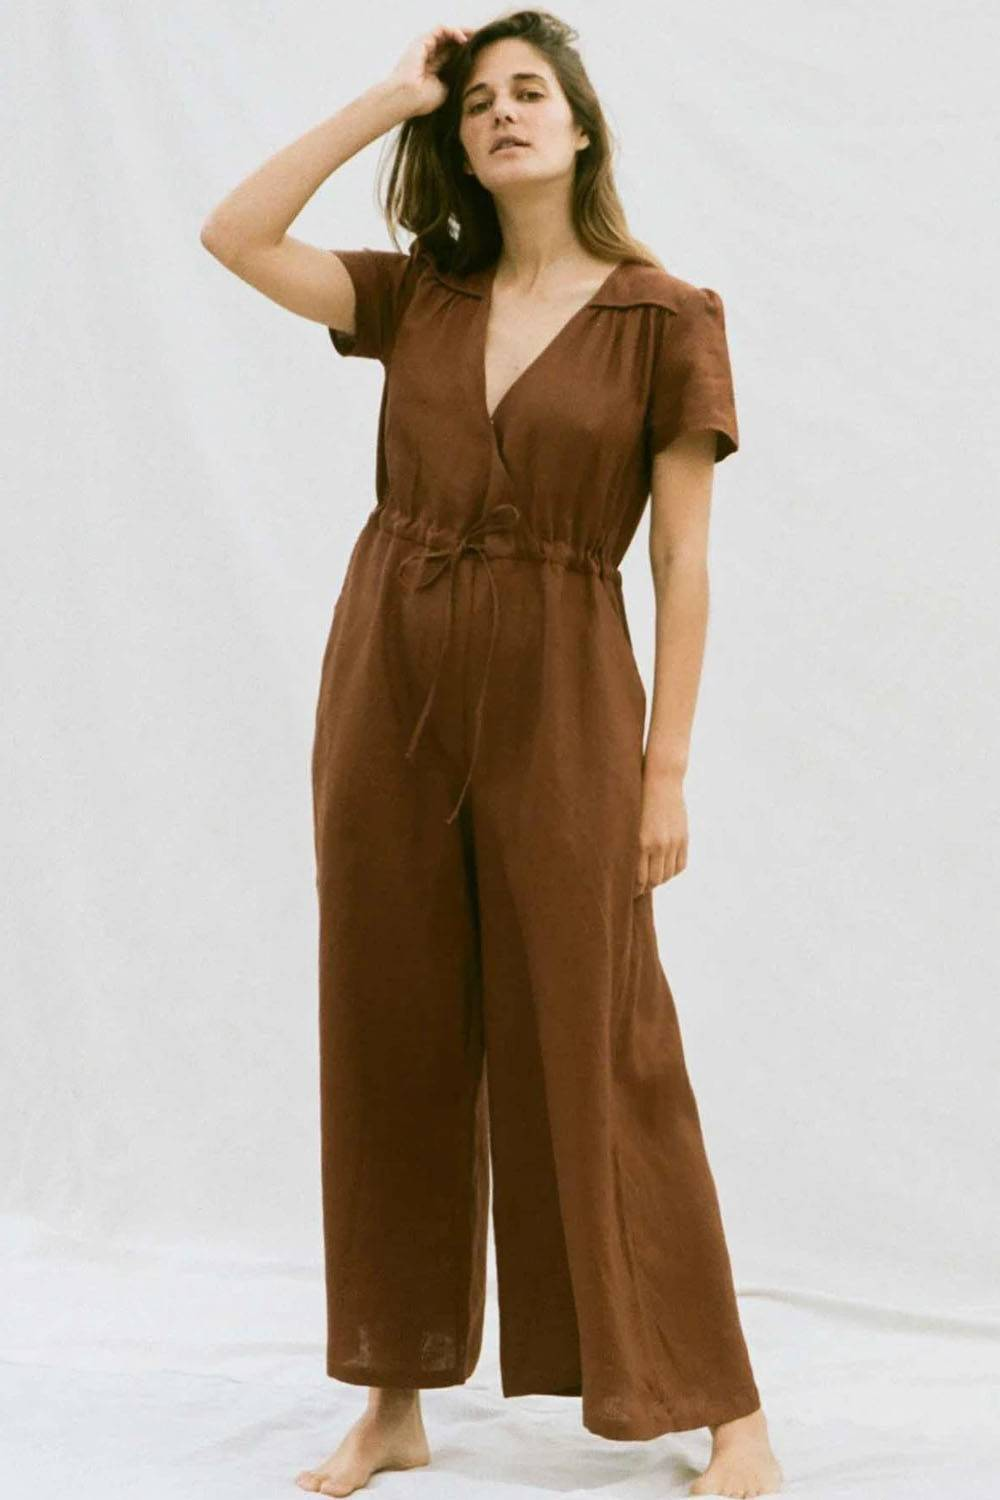 christy dawn affordable linen clothing usa